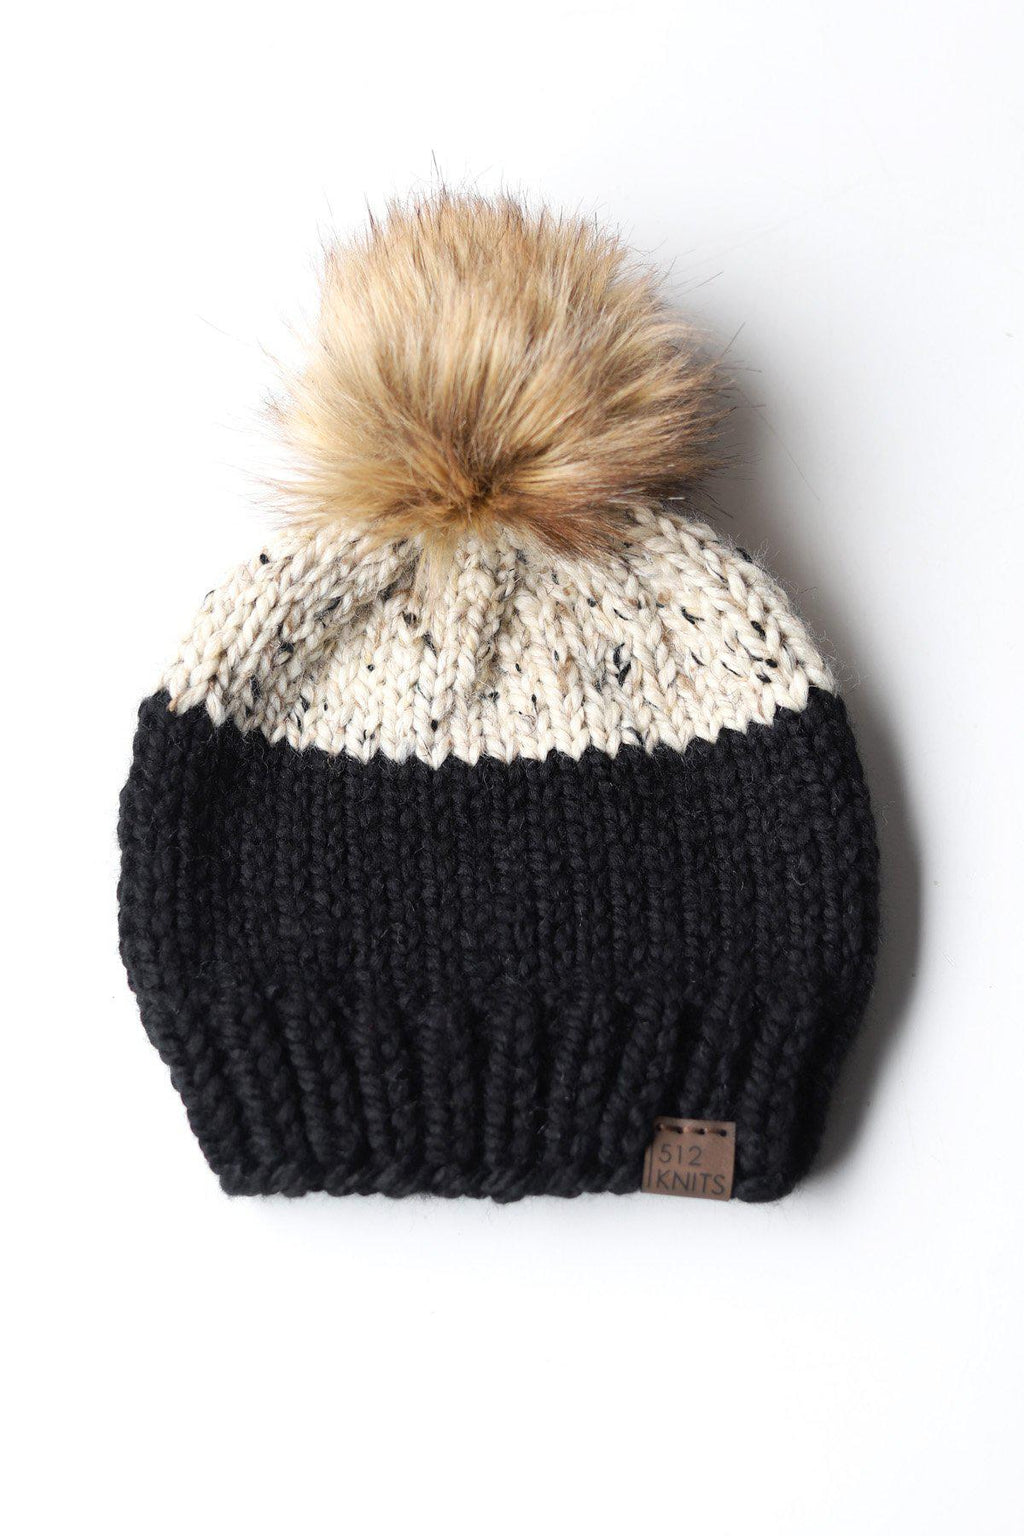 Holland 2 Tone Beanie - 6yrs to Adult Small